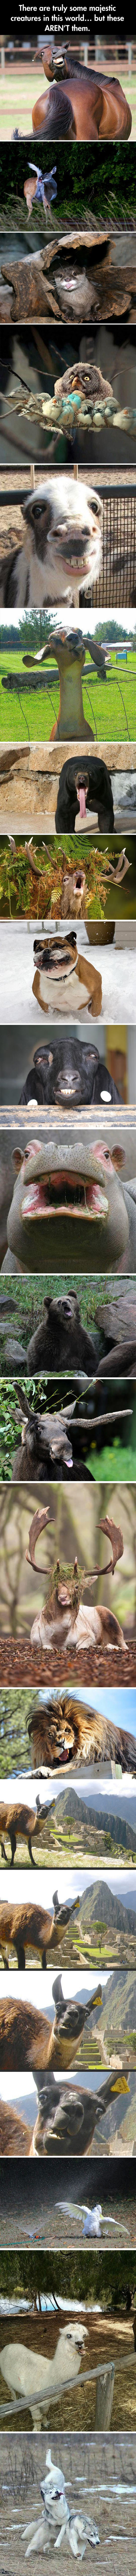 cool-majestic-animals-nature-faces